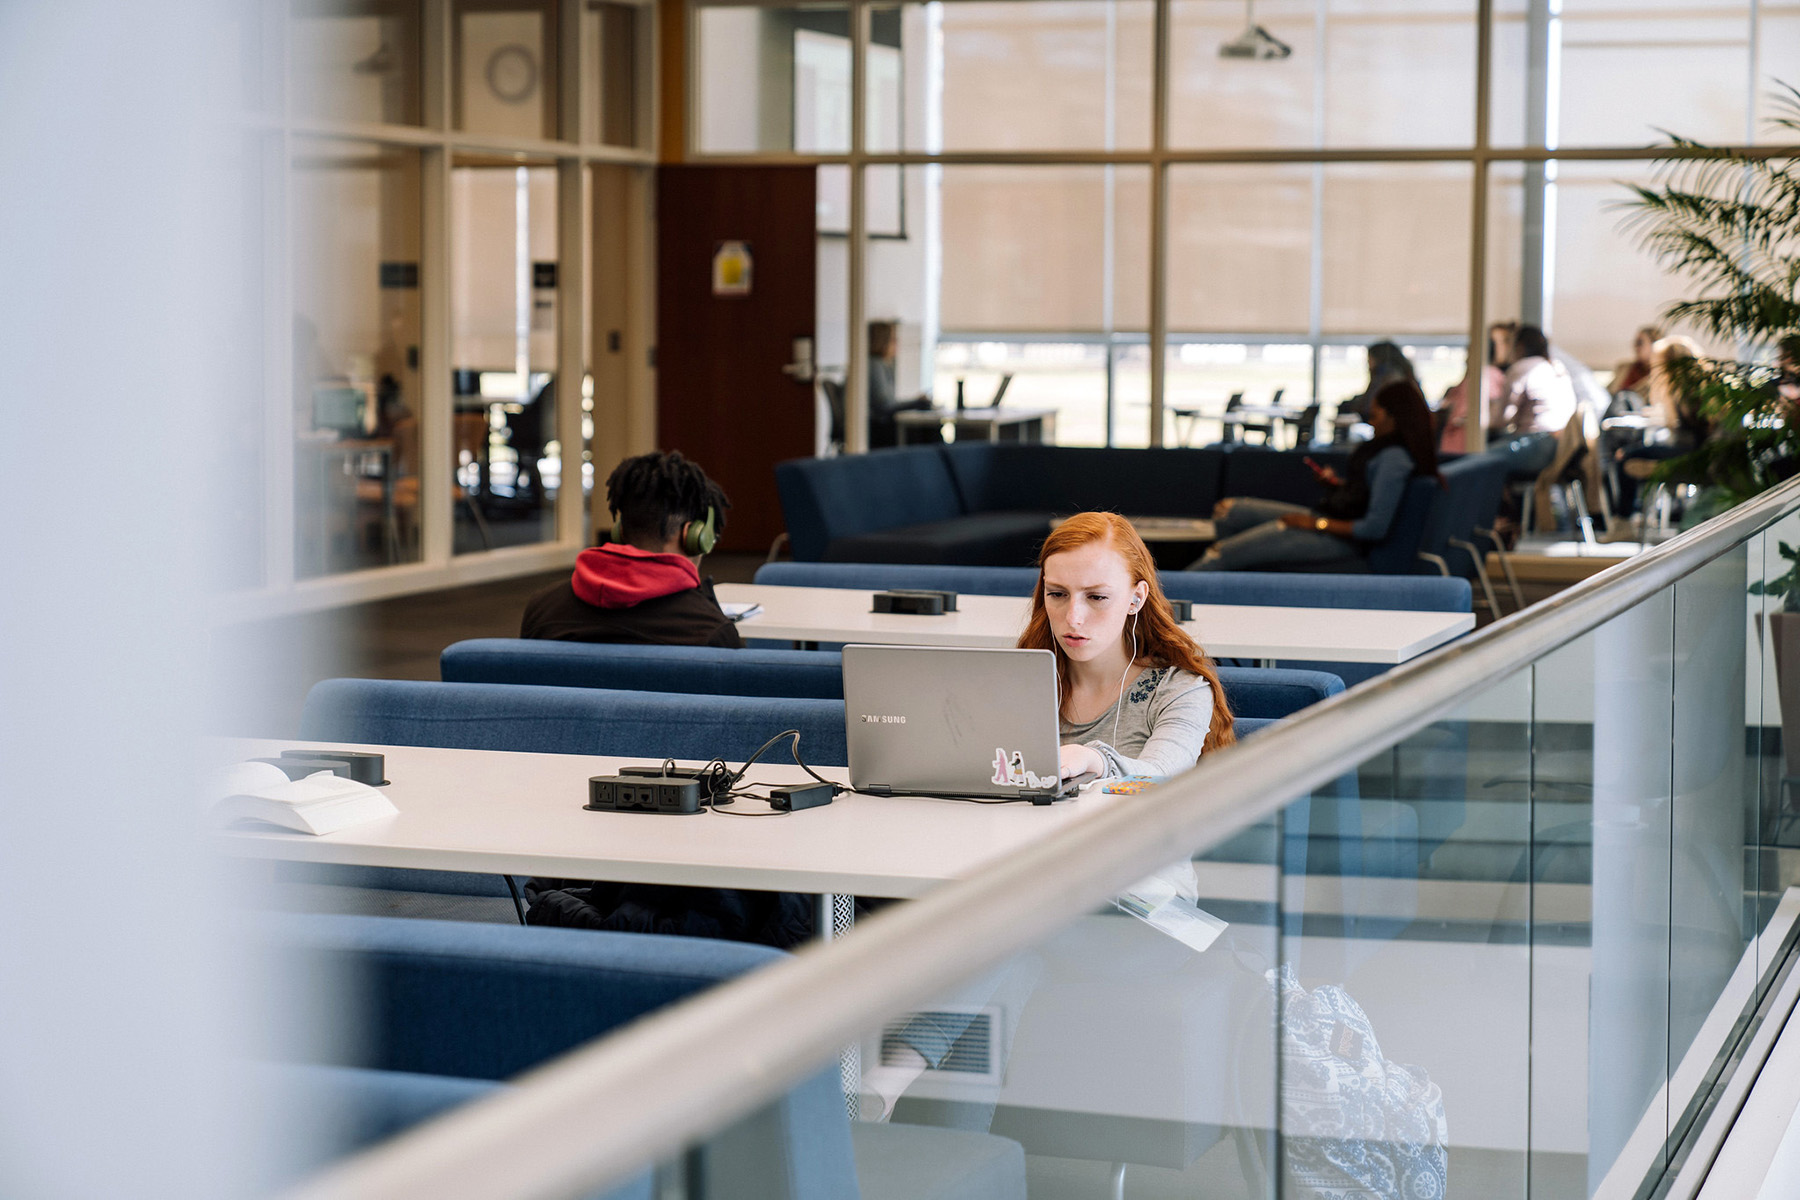 Students study in the Monninger Center.